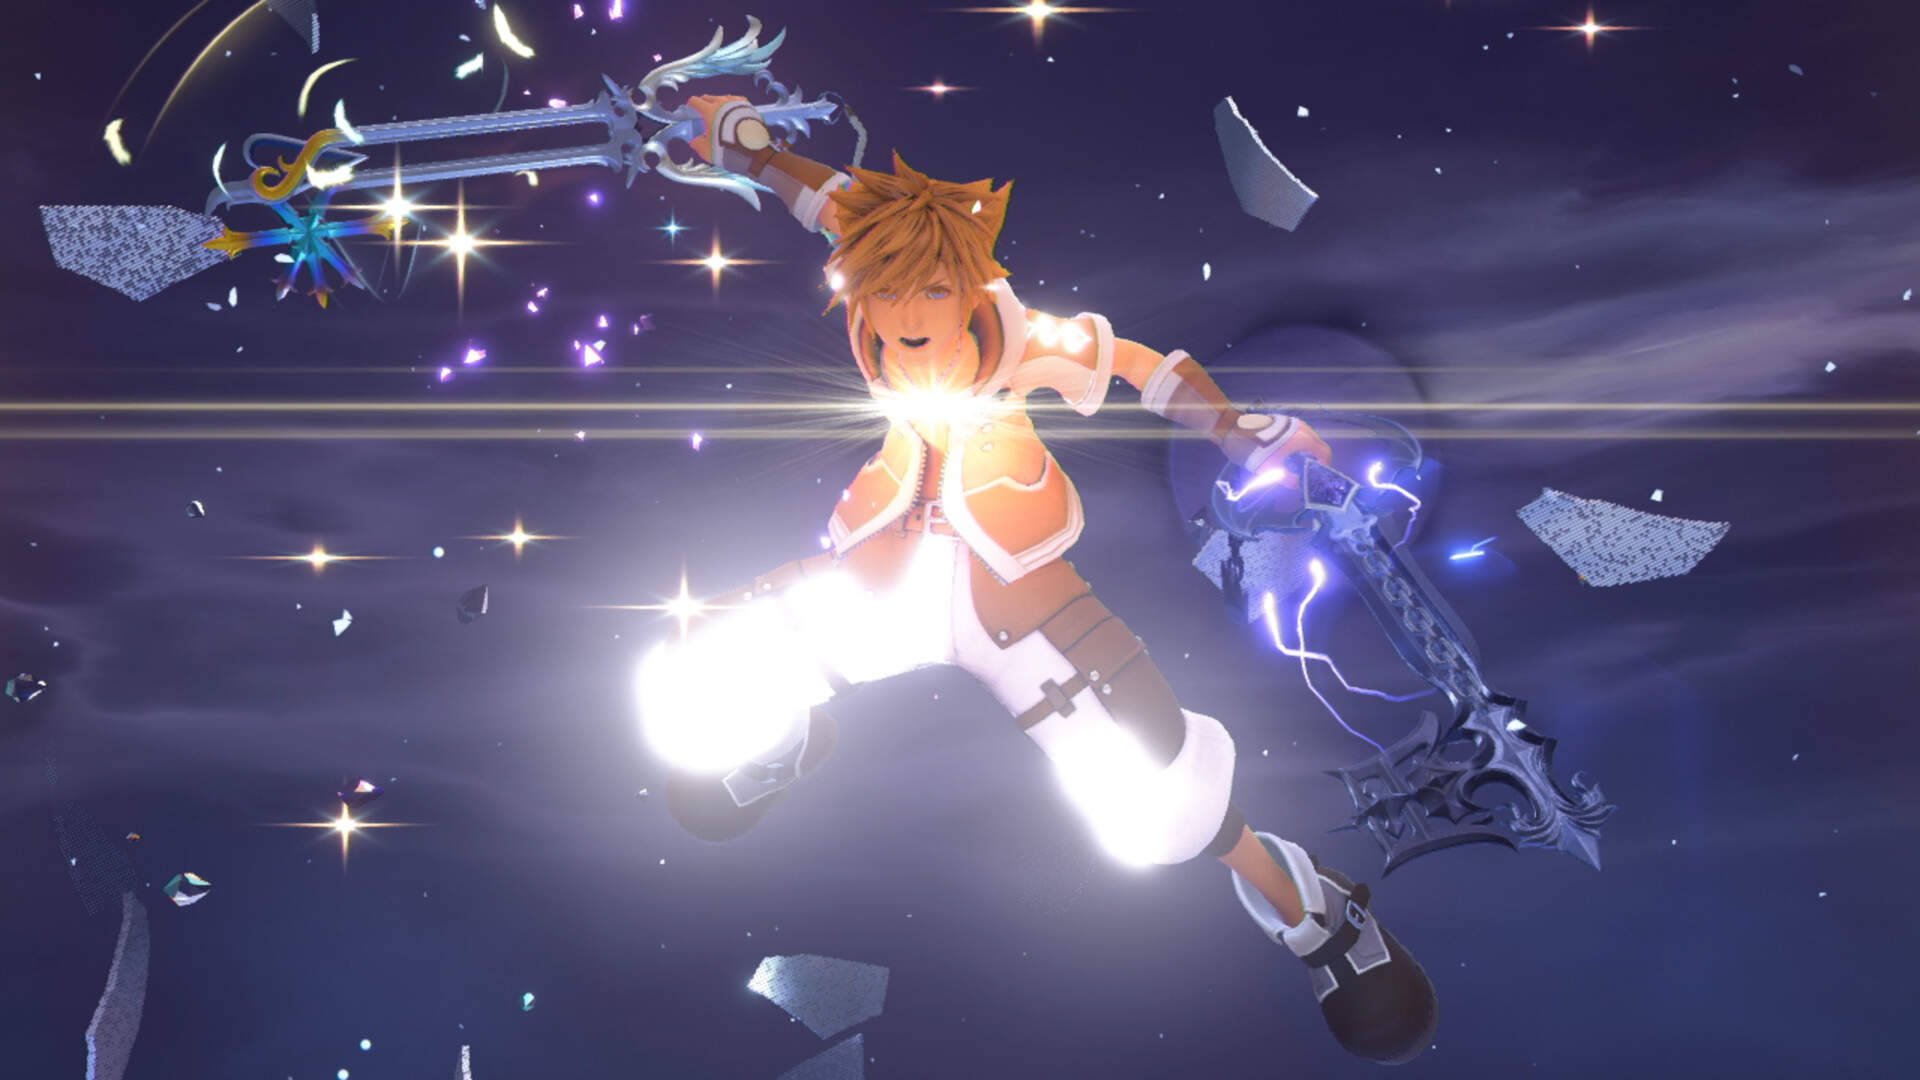 Kingdom Hearts 3 Gets an Update That Tweaks the Ending, Right Before First Major DLC